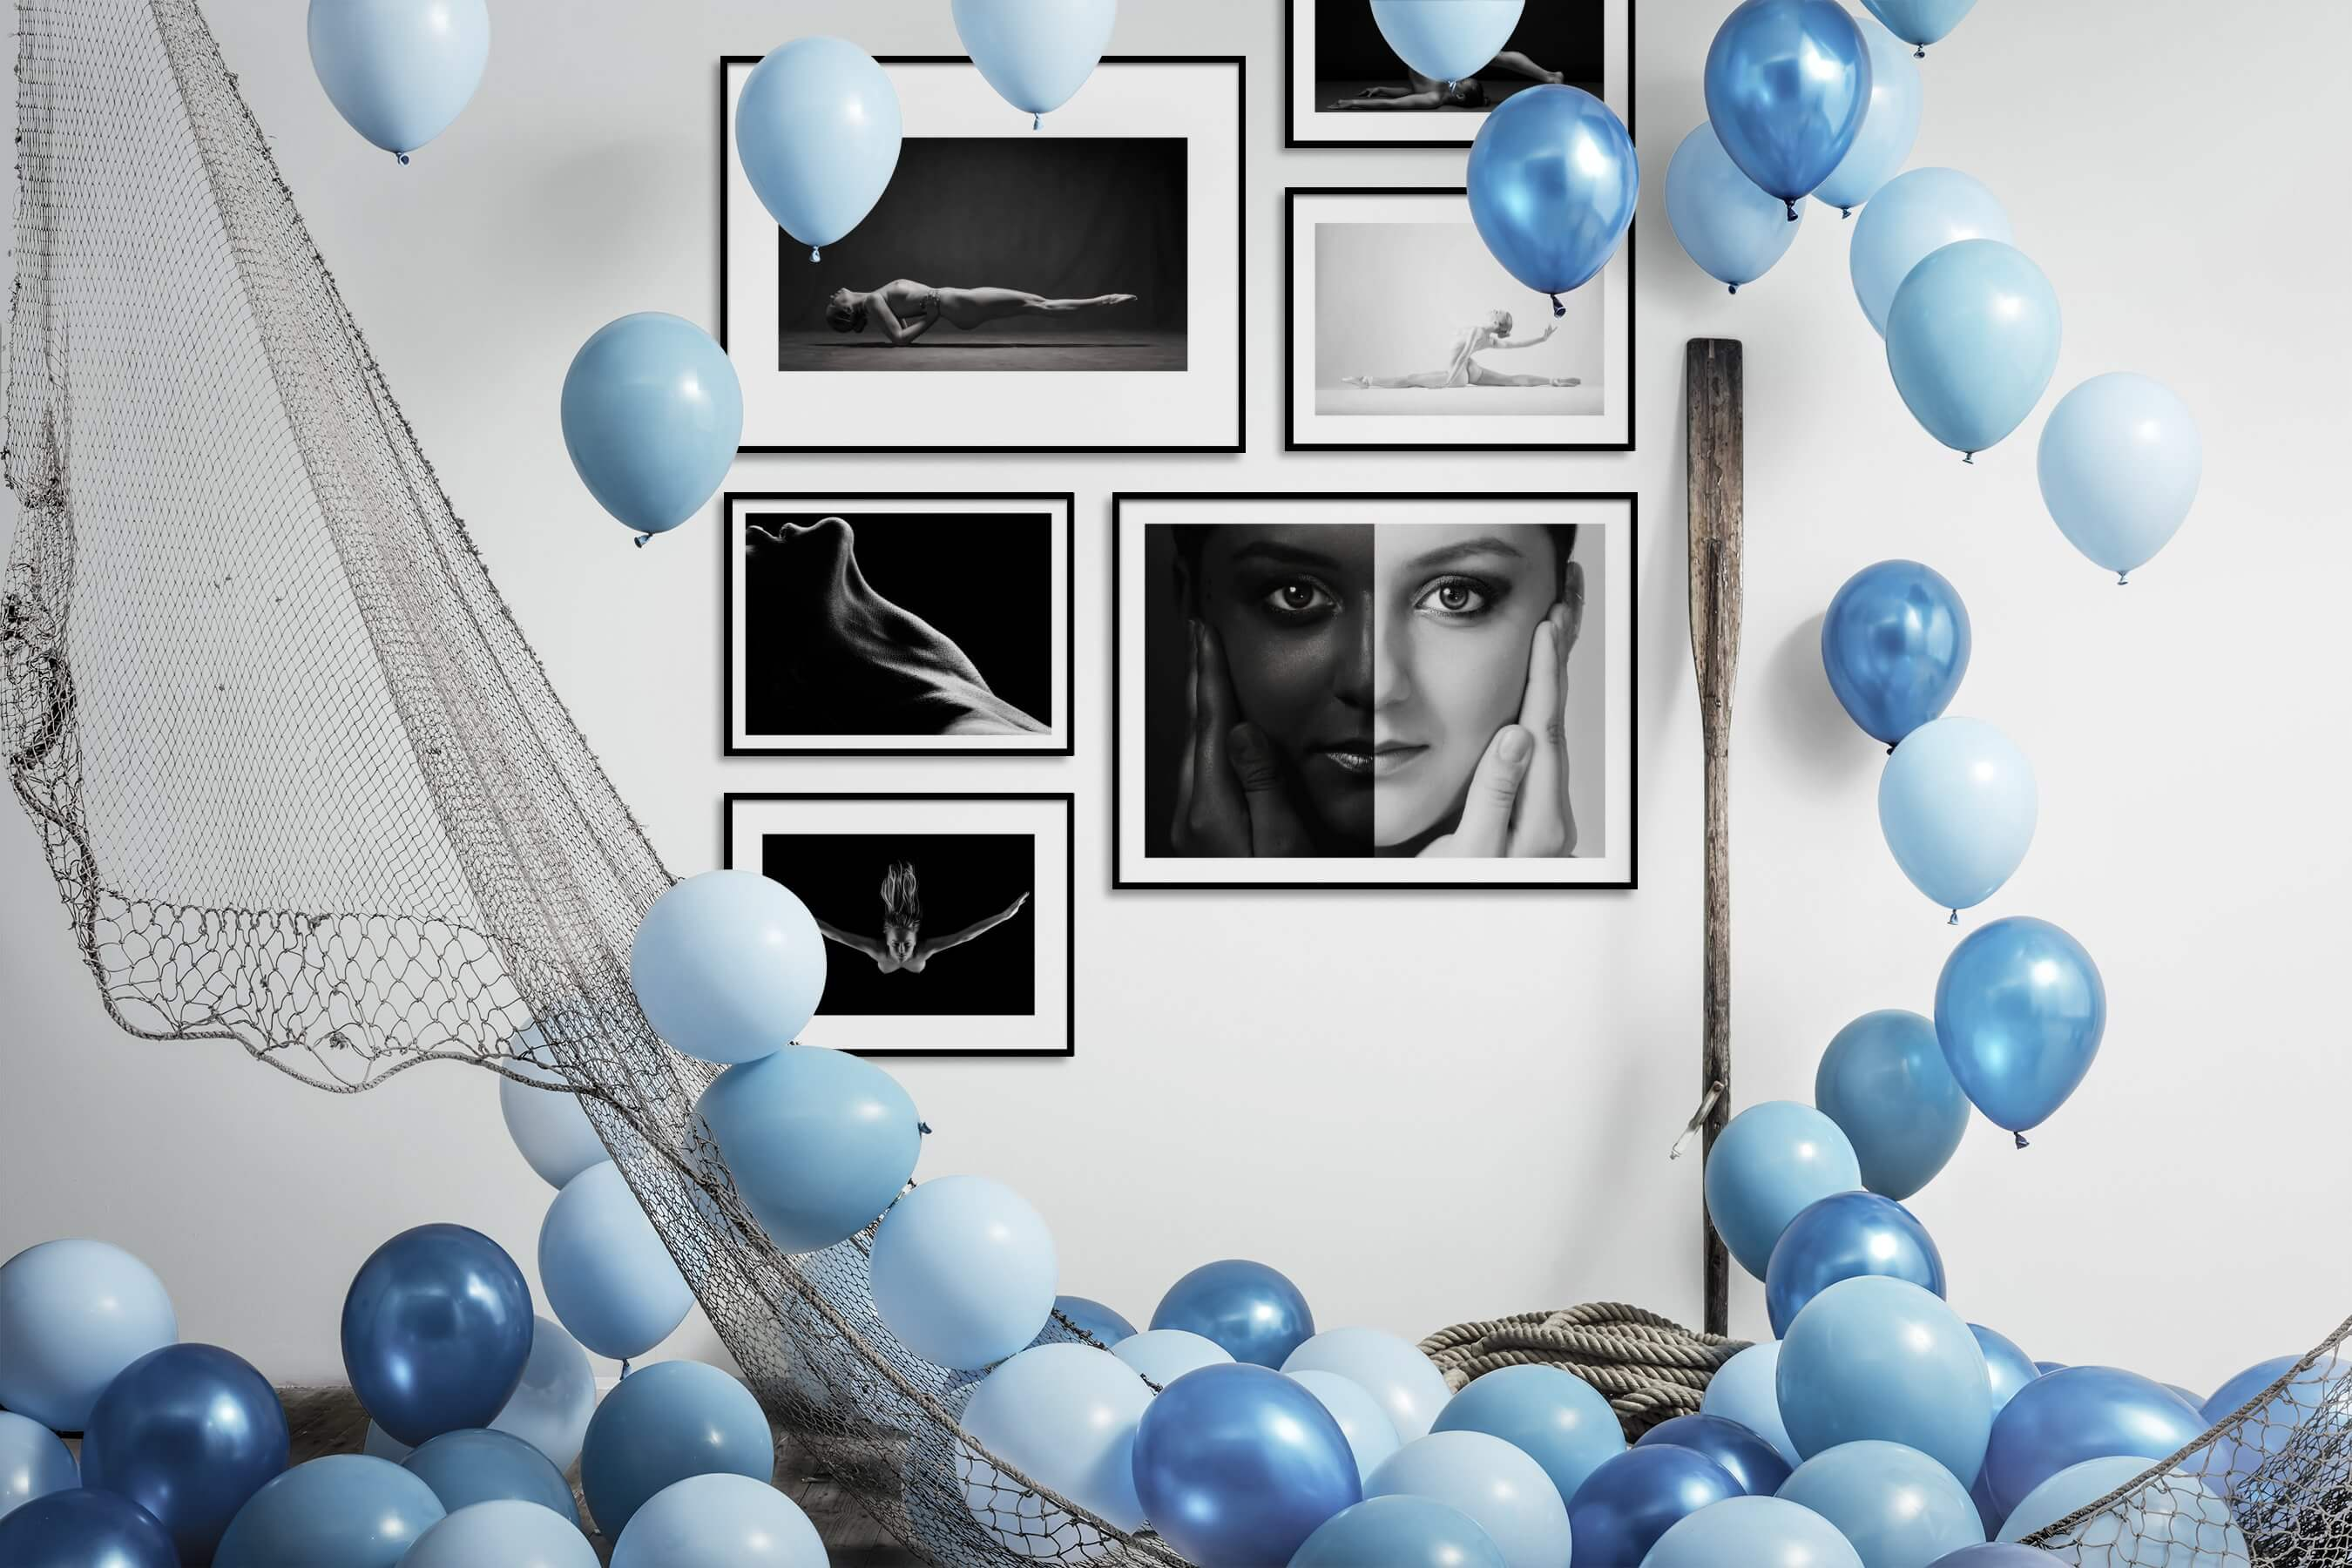 Gallery wall idea with six framed pictures arranged on a wall depicting Fashion & Beauty, Black & White, For the Minimalist, and Bold